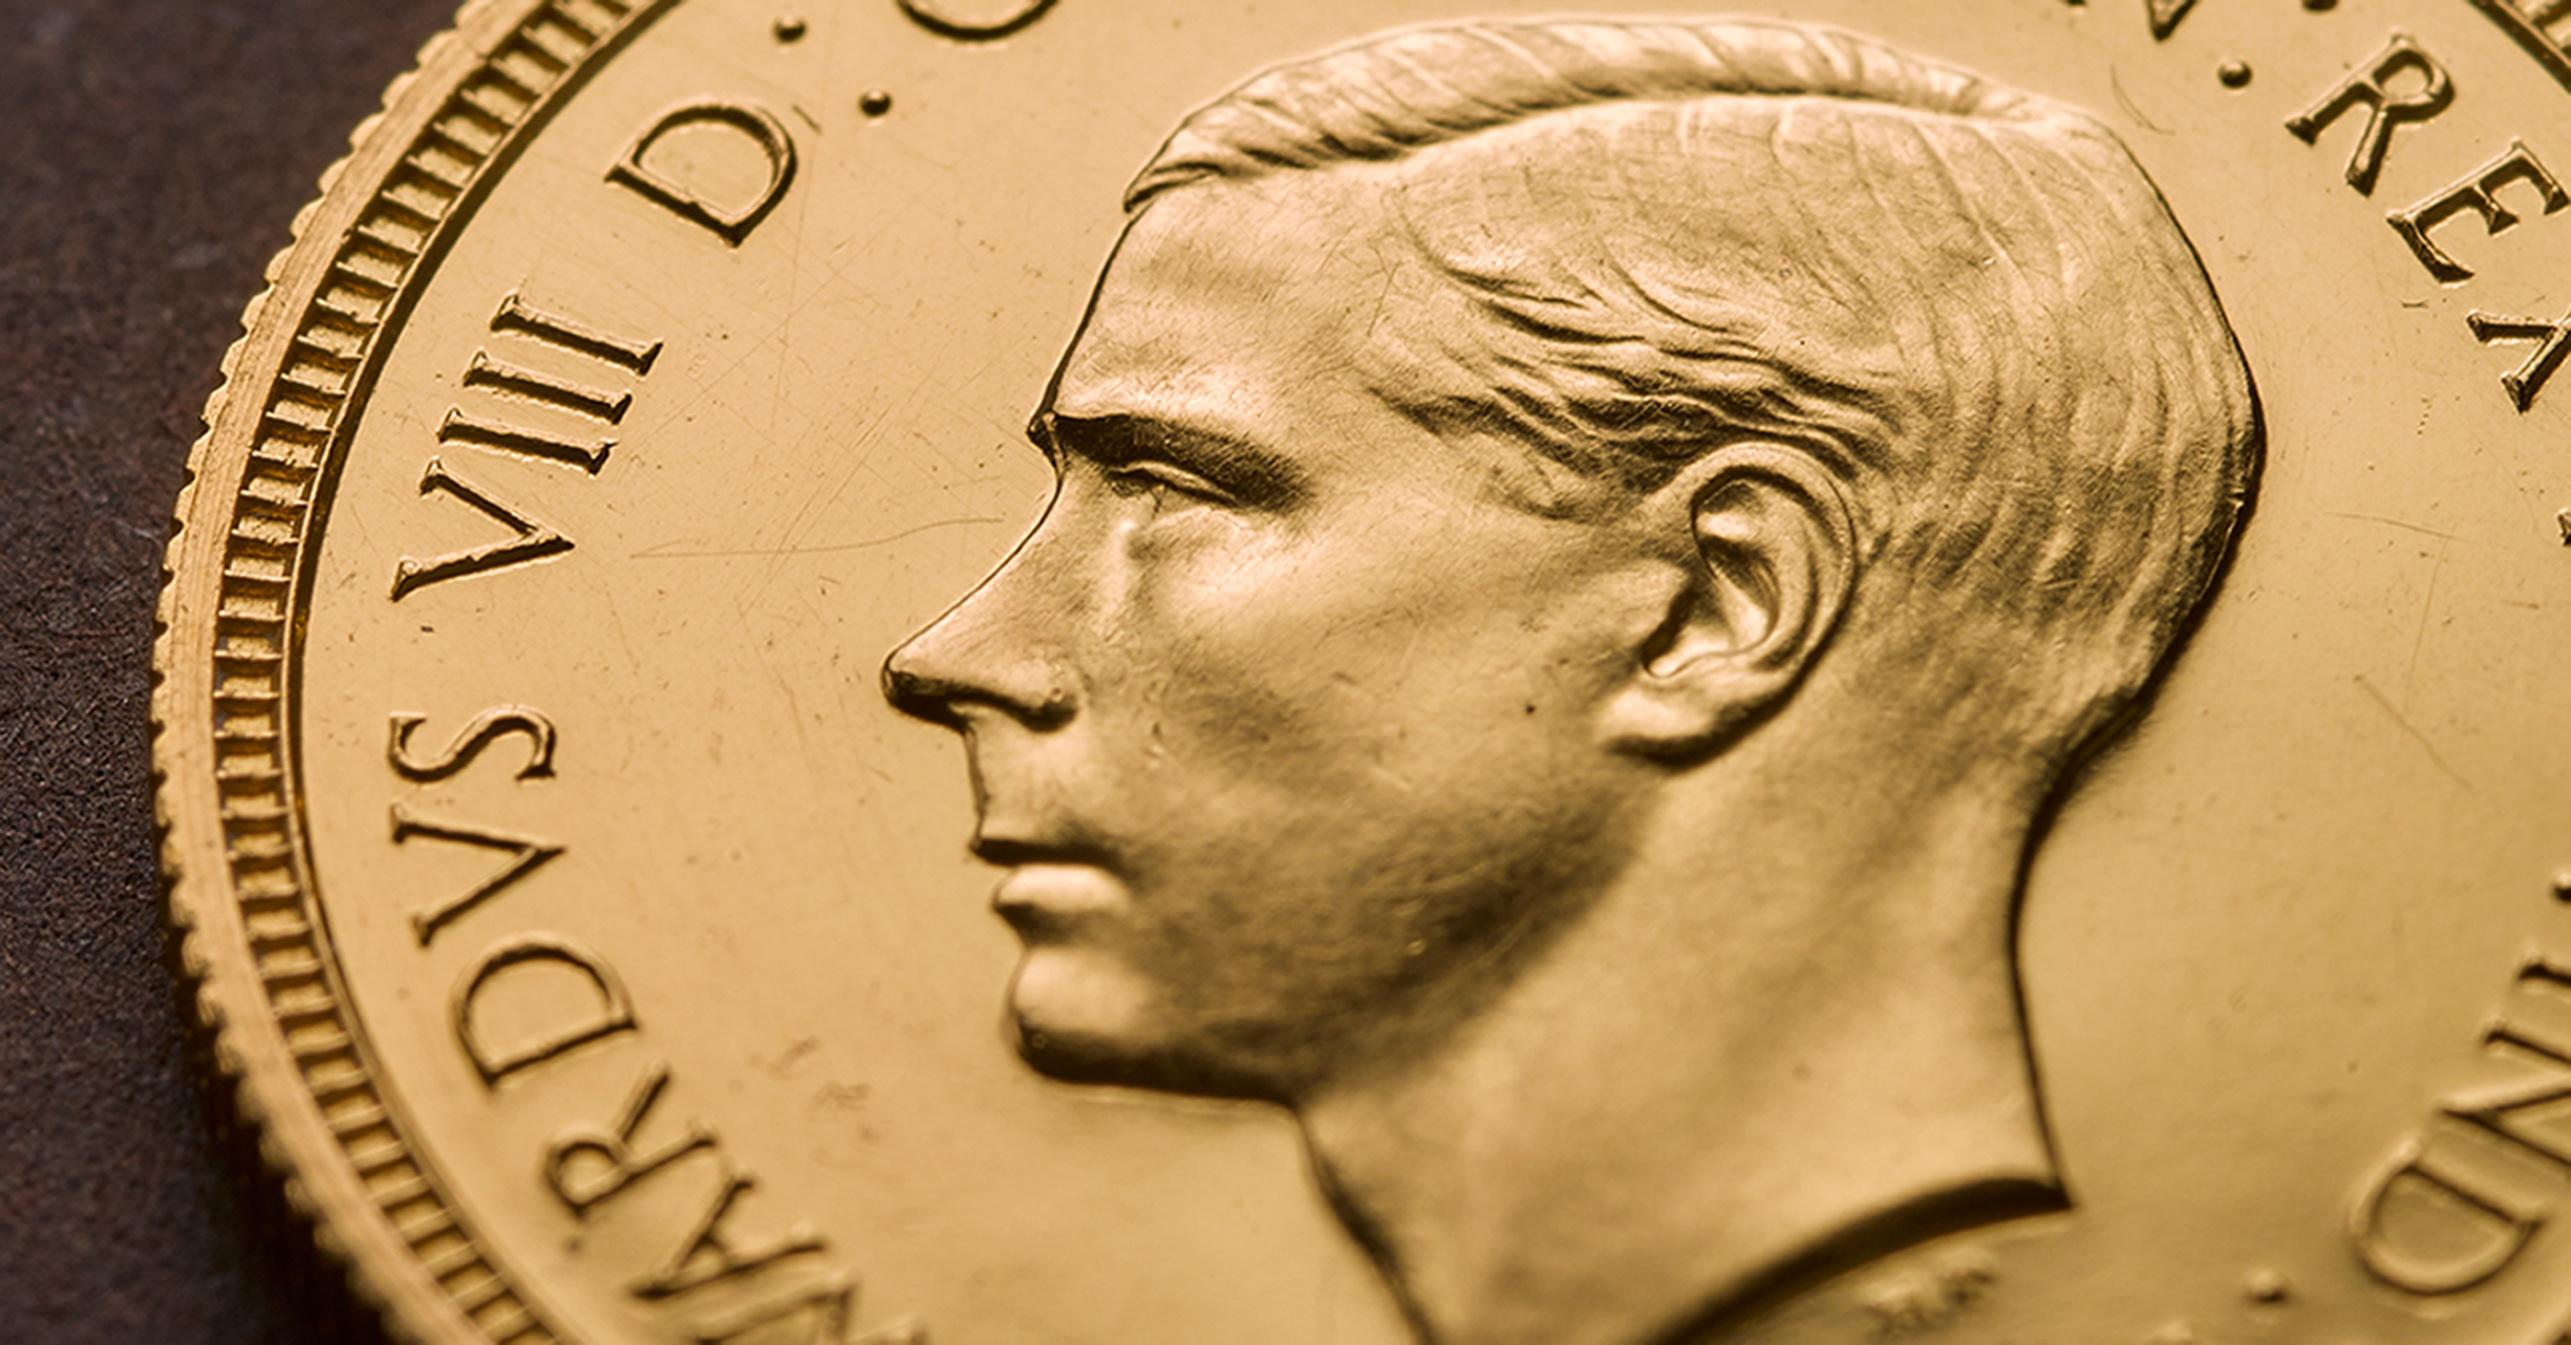 Rare £1 coin sells for record £1m